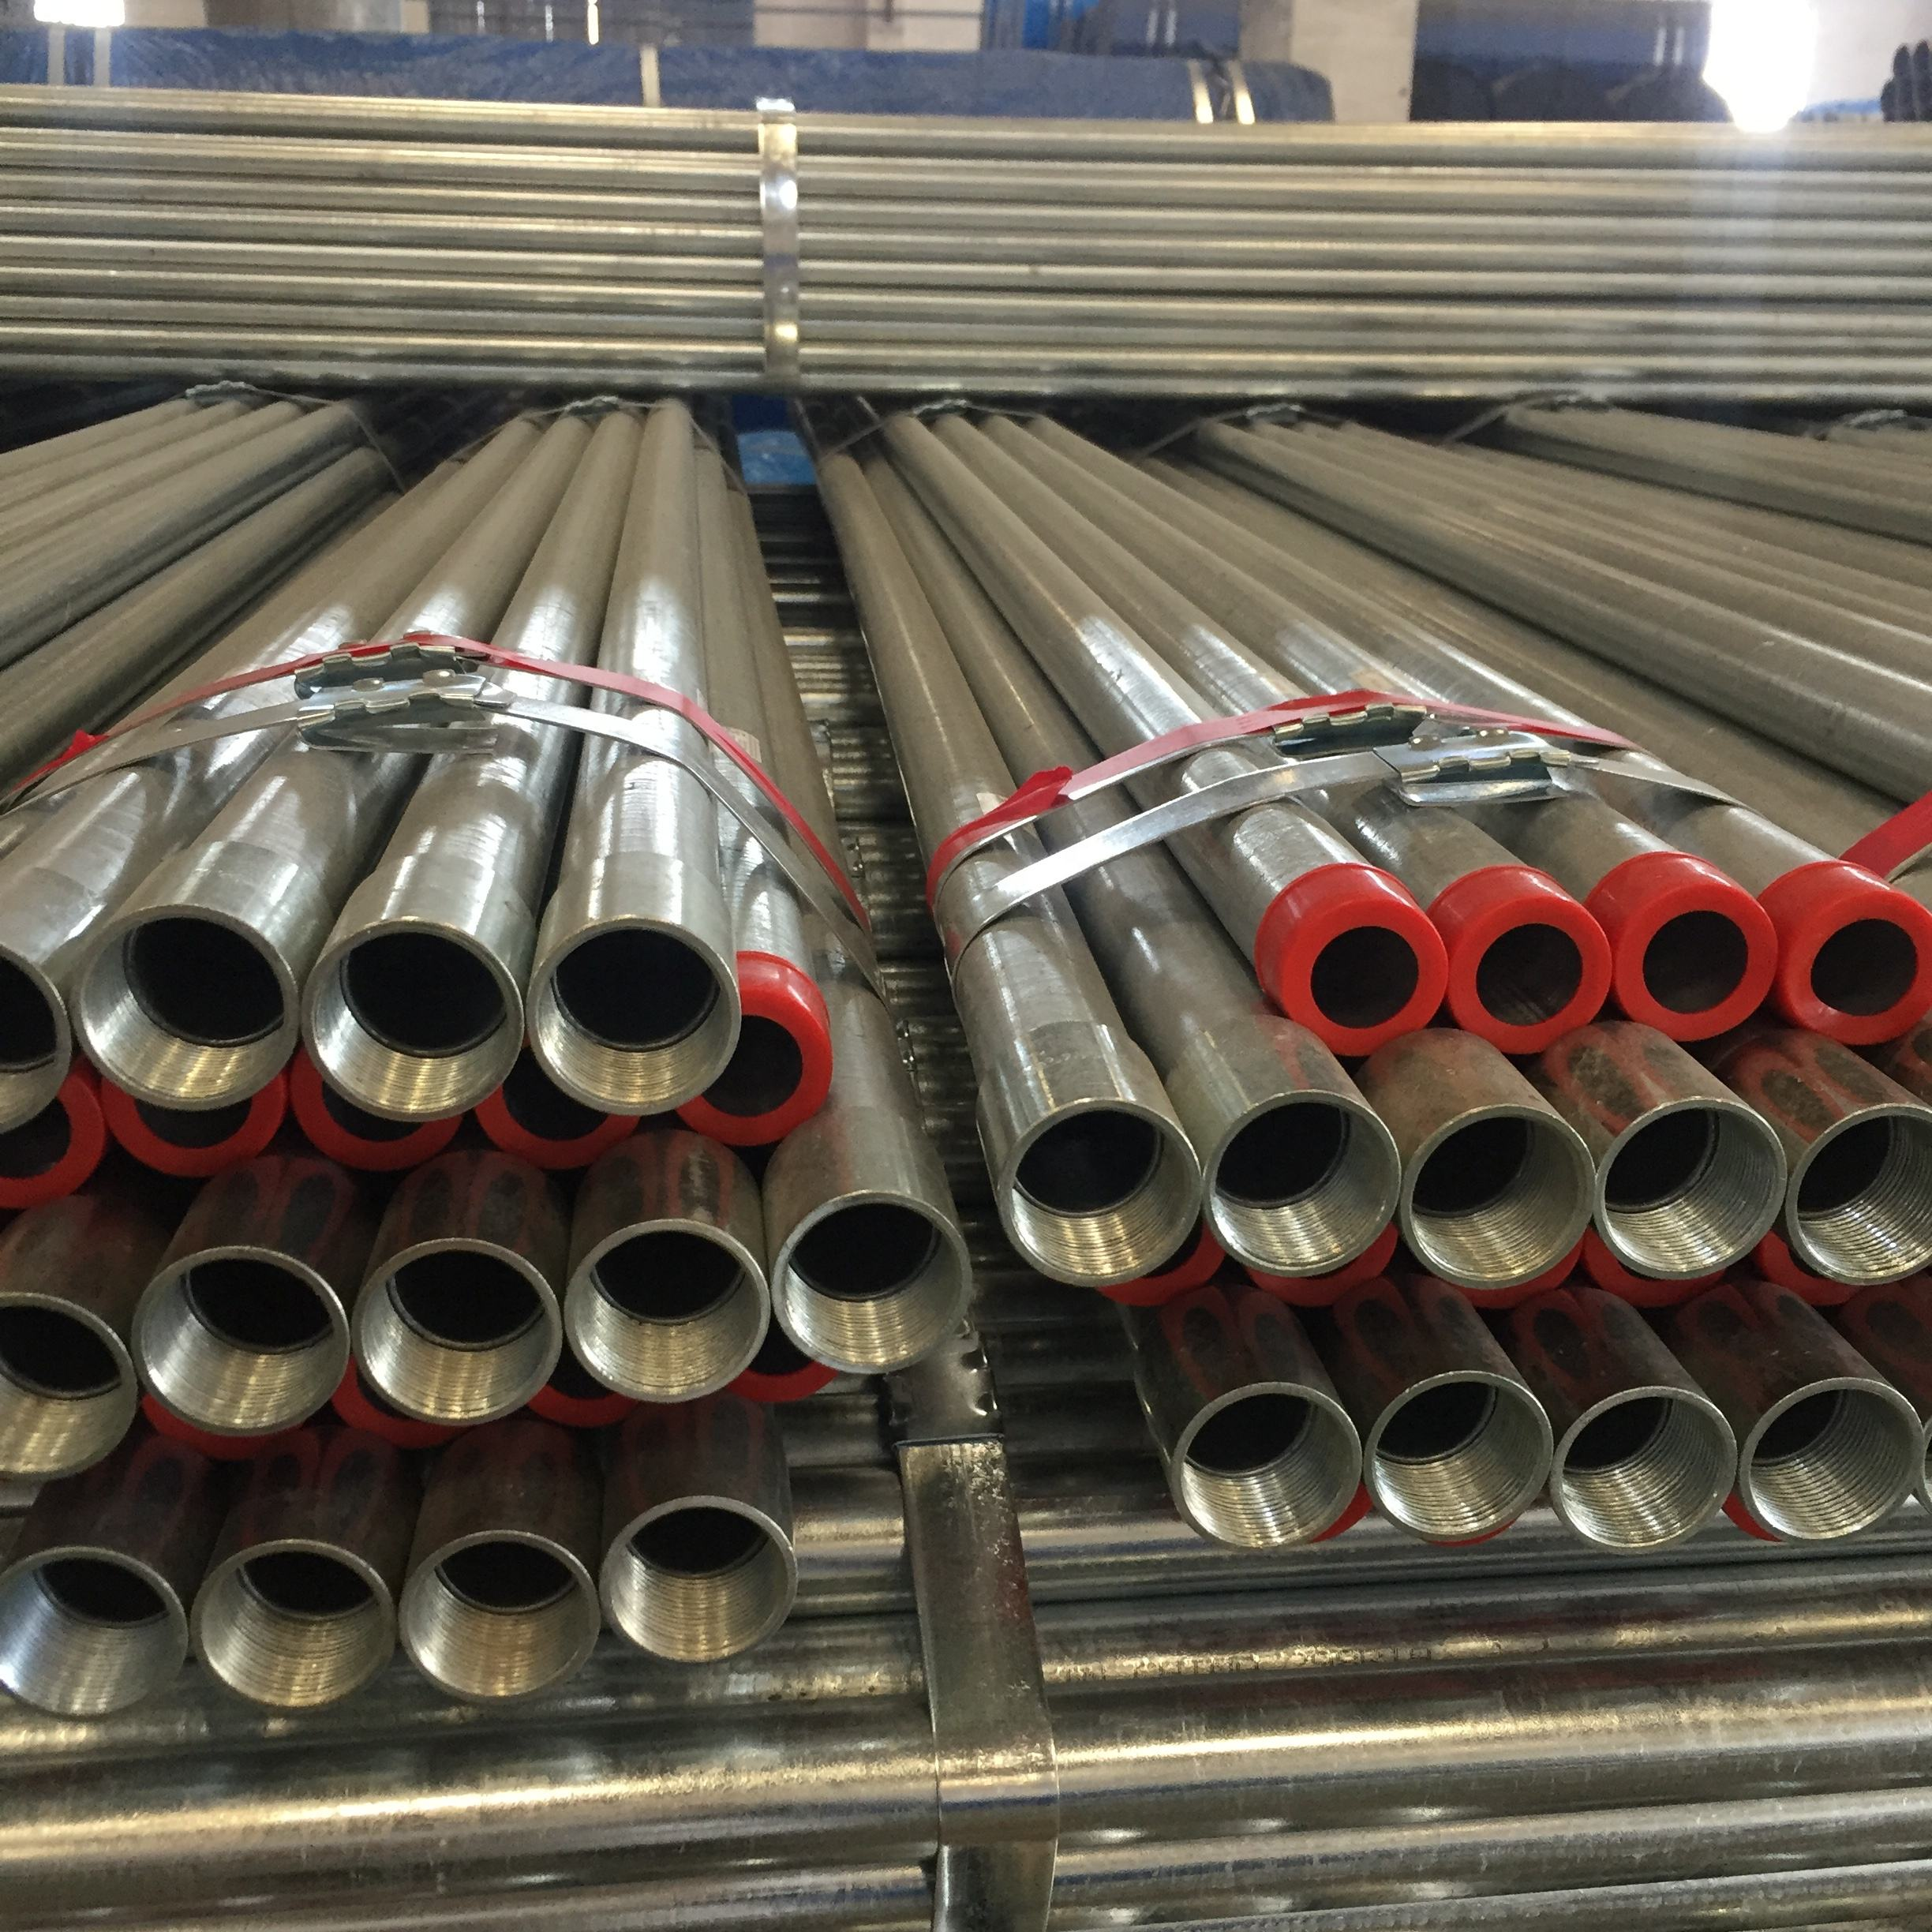 IMC conduit hot galvanized rigid steel pipe lower life-cycle cost ERW tubing with ANSI C80.6 standard UL1242